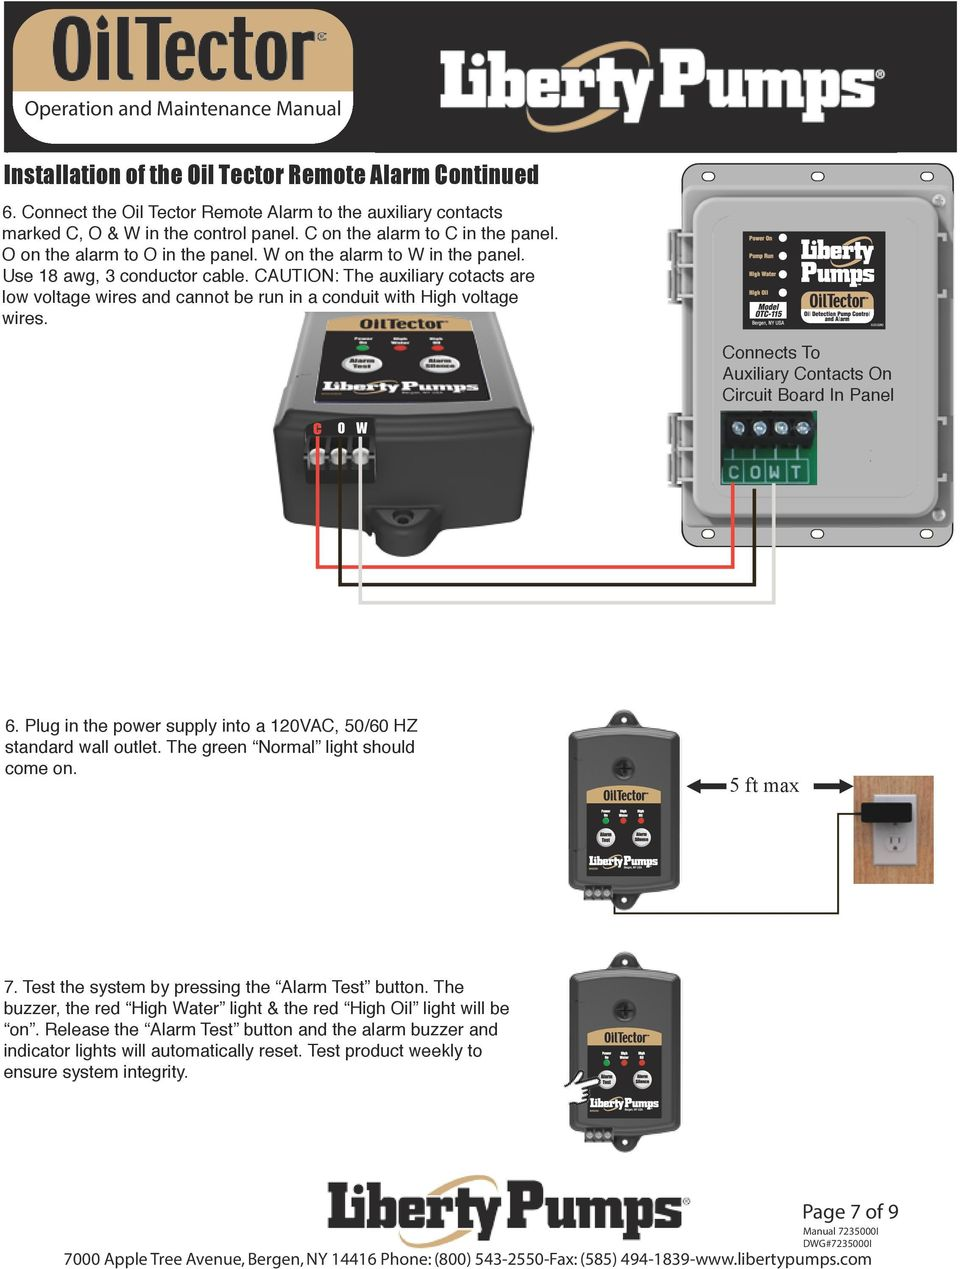 Introduction Safety Guidelines Part Numbers Operation And Five Battery Low Voltage Alarm Indicator Circuits Caution The Auxiliary Cotacts Are Wires Cannot Be Run In A Conduit